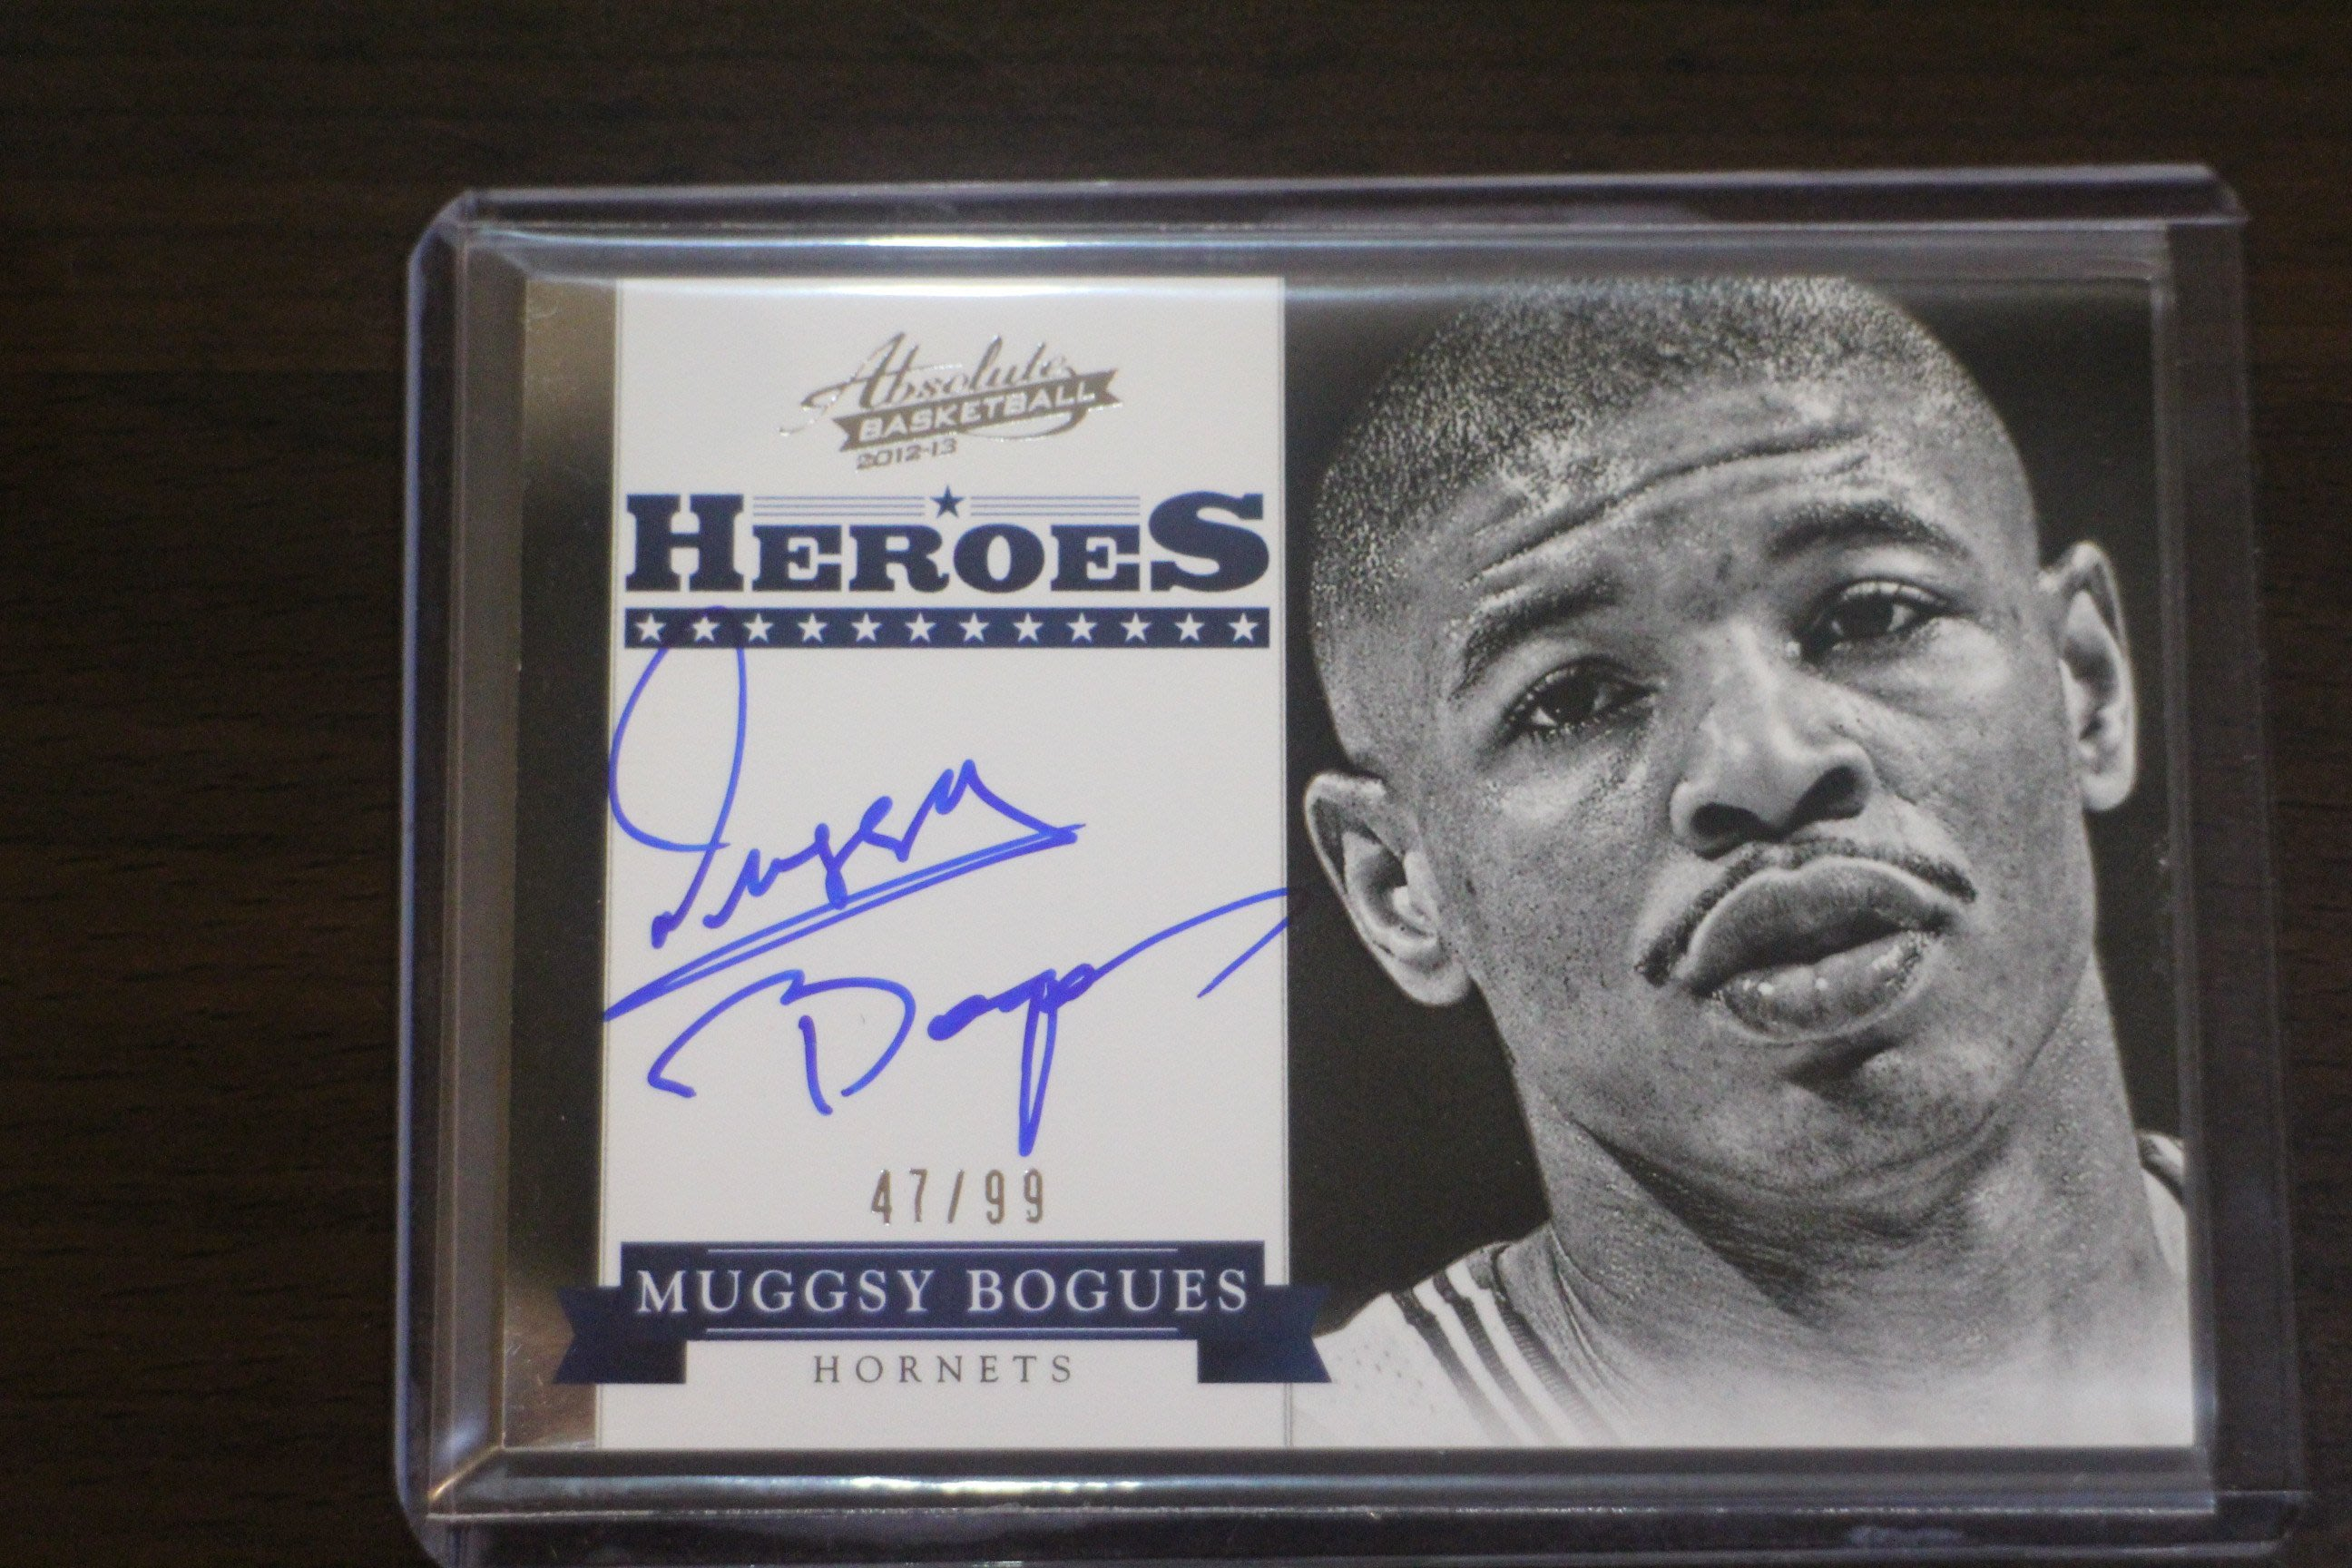 2012-13 Absolute Heroes Auto Muggsy Bogues 限量99張簽名卡